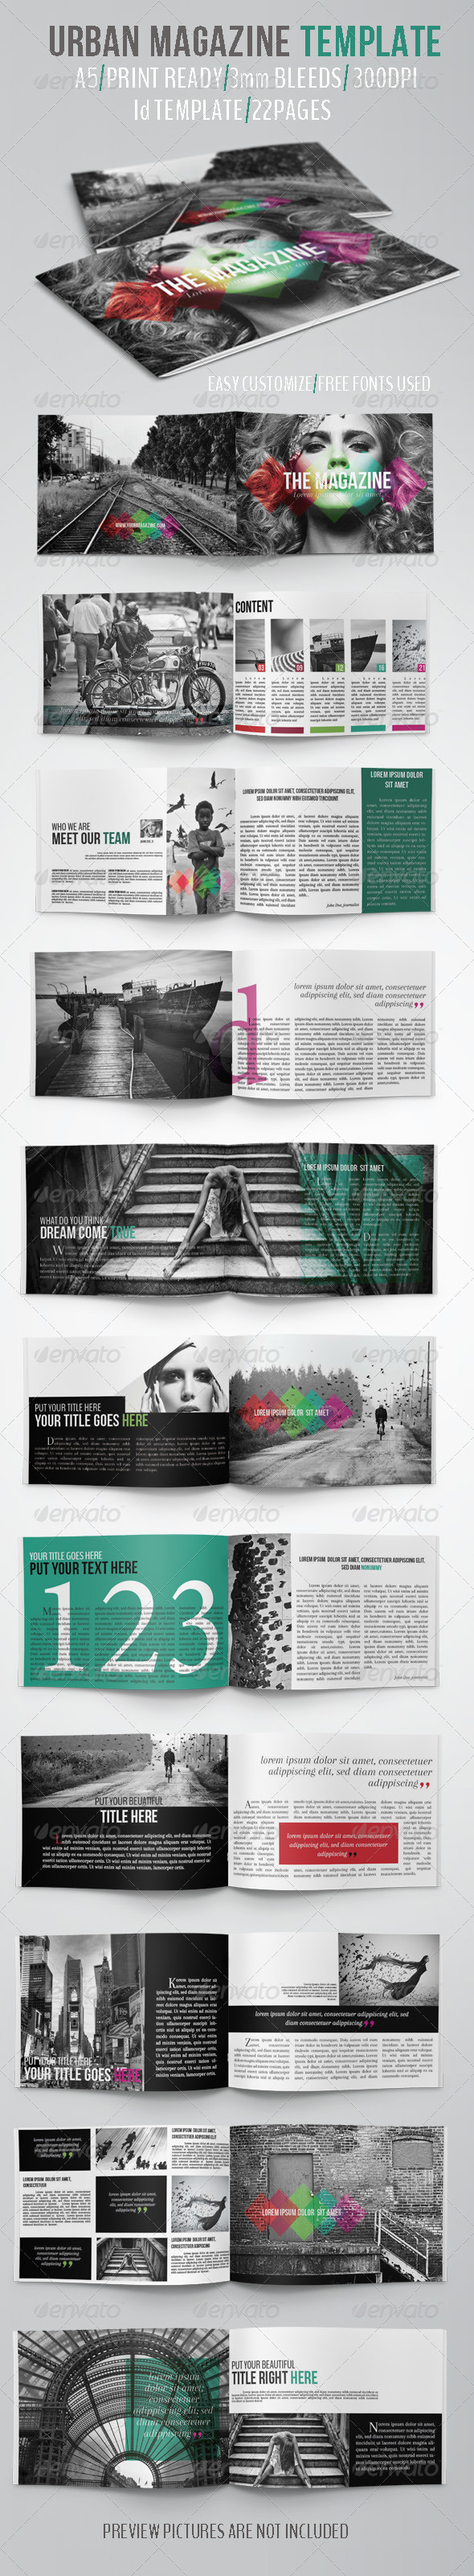 GraphicRiver Urban Magazine Template 5162870